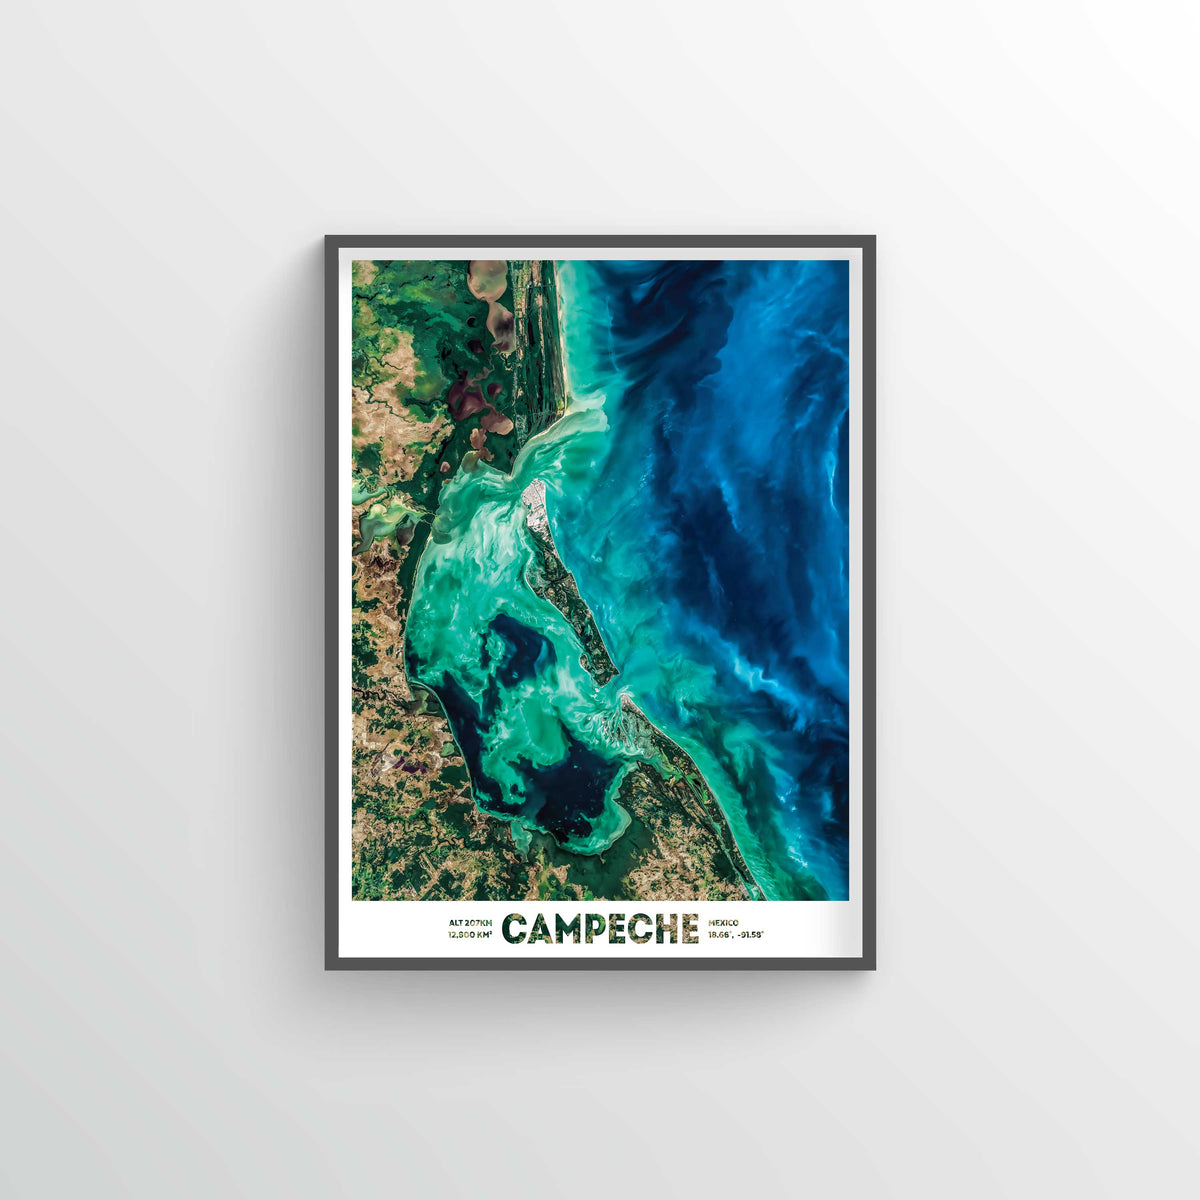 Campeche Mexico Earth Photography - Art Print - Point Two Design